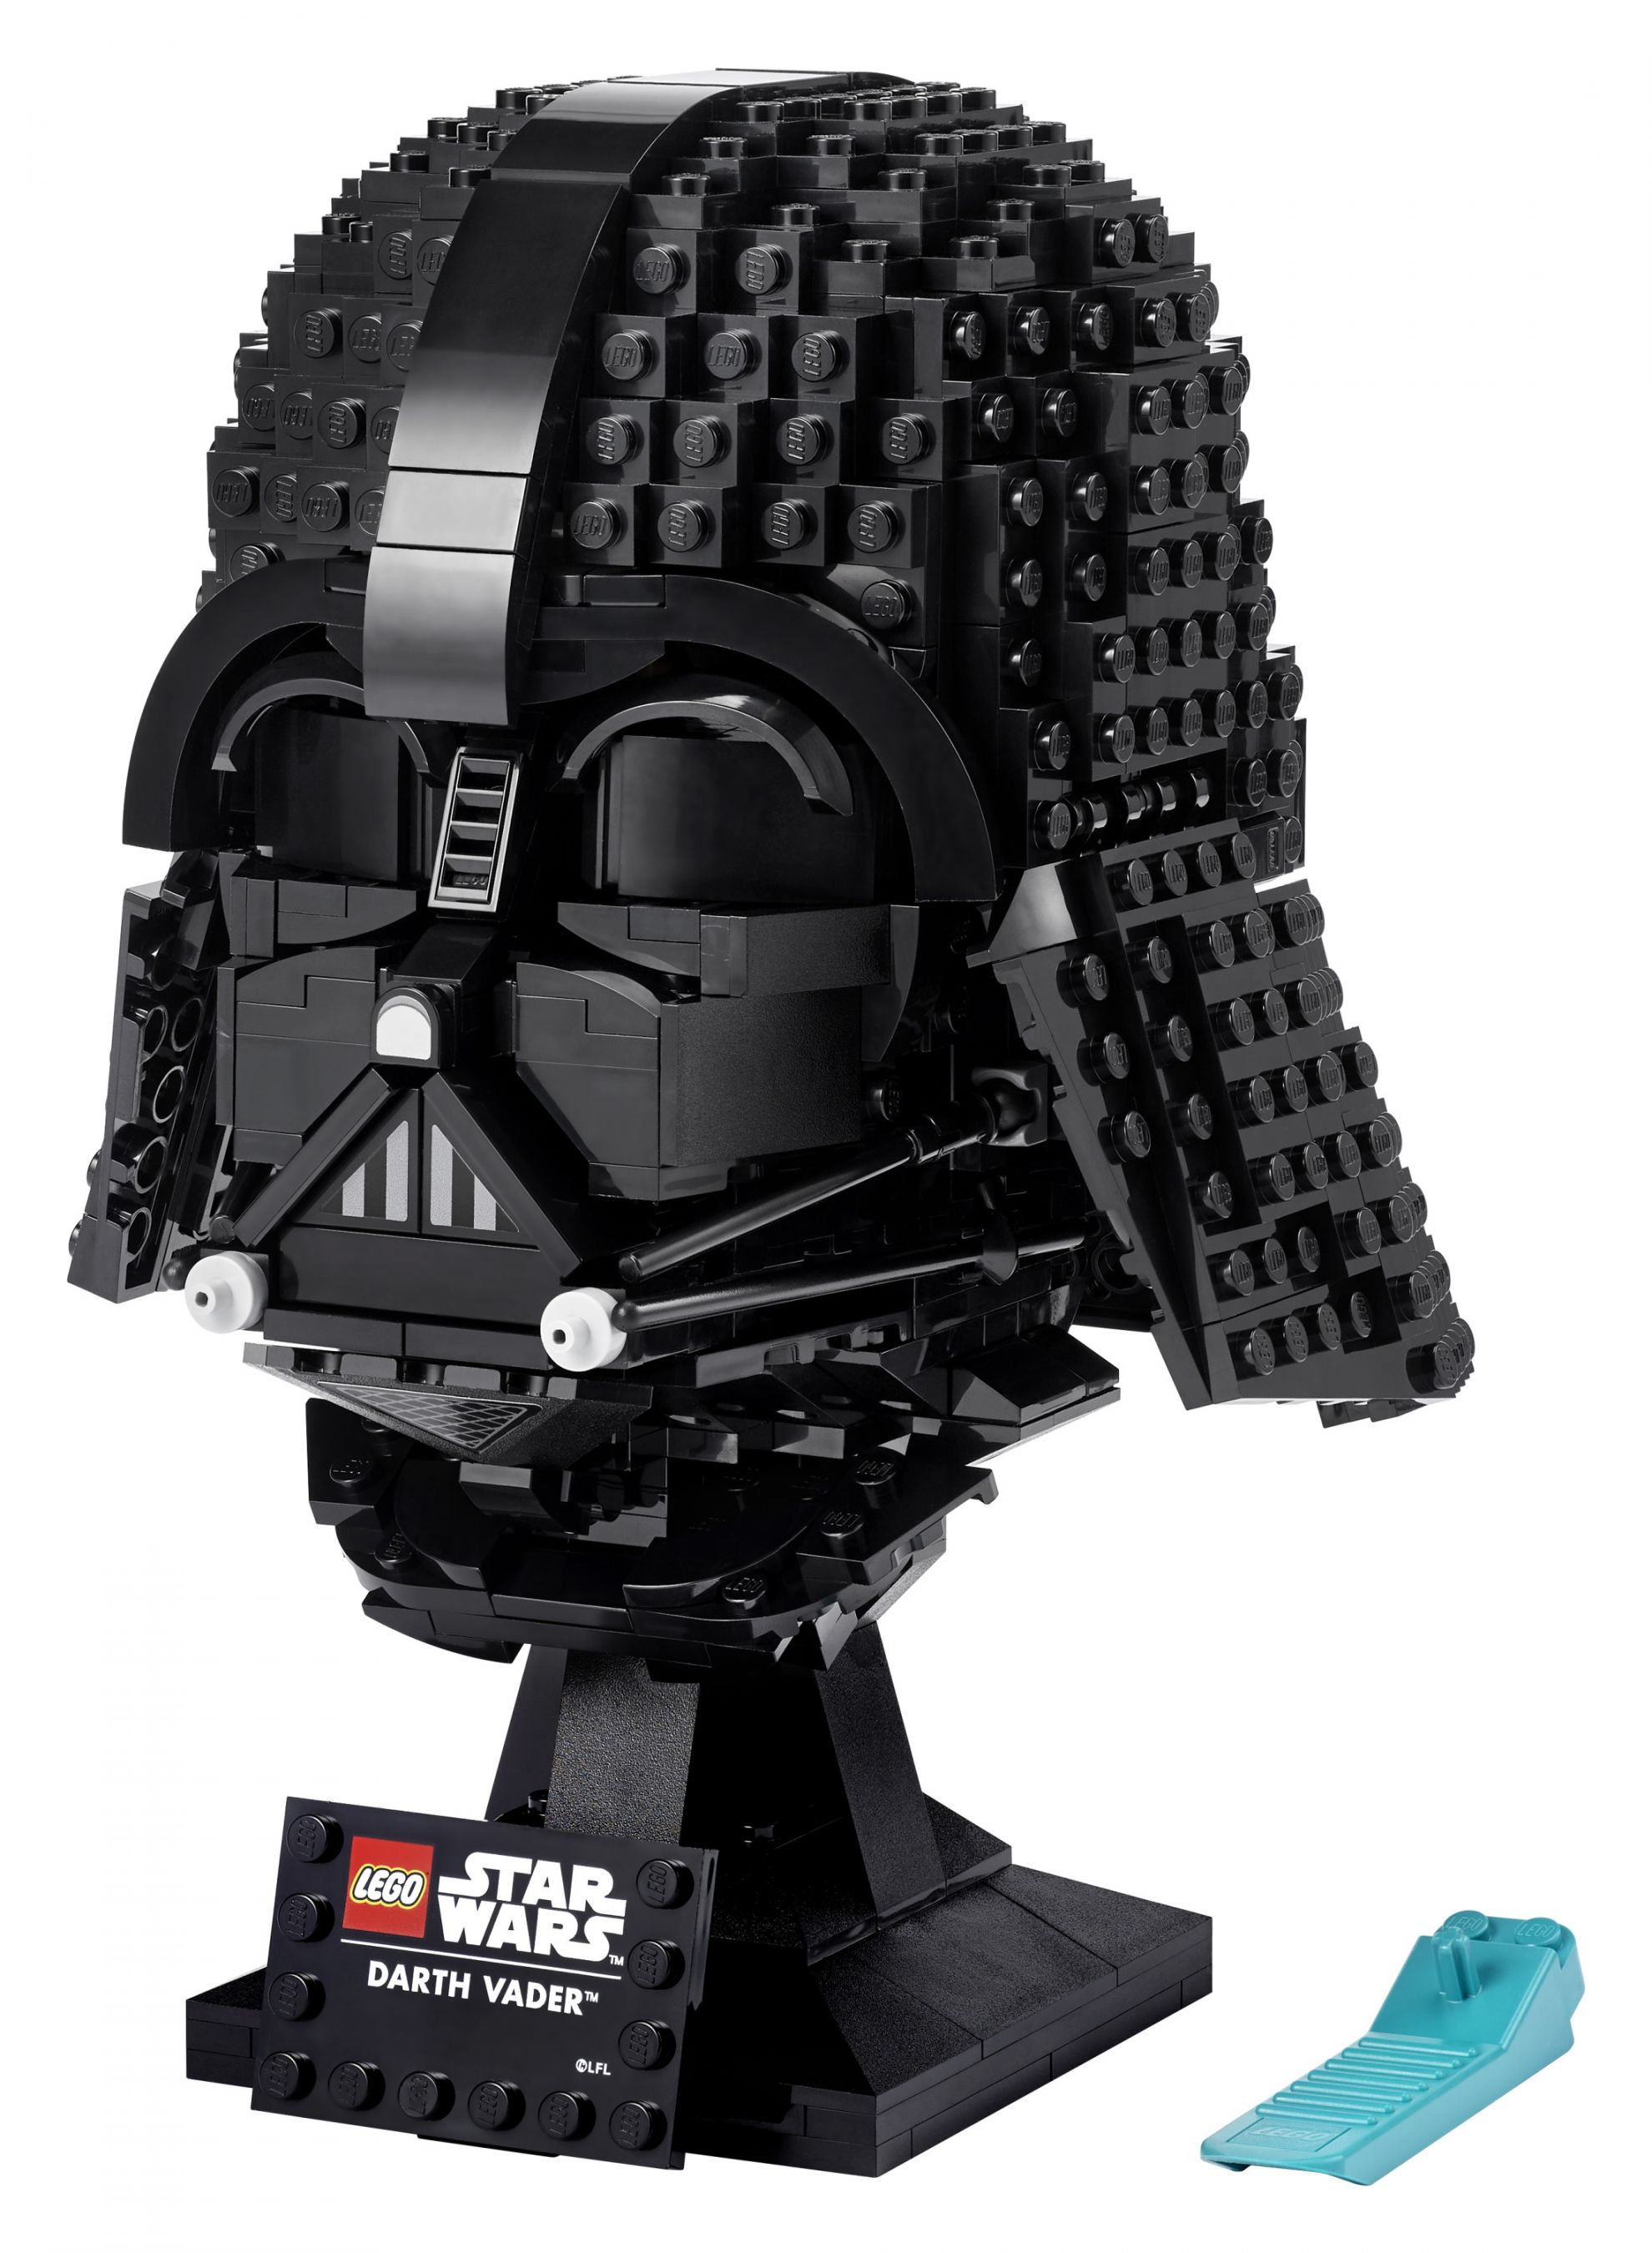 LEGO Star Wars 75304 Darth Vader Helm